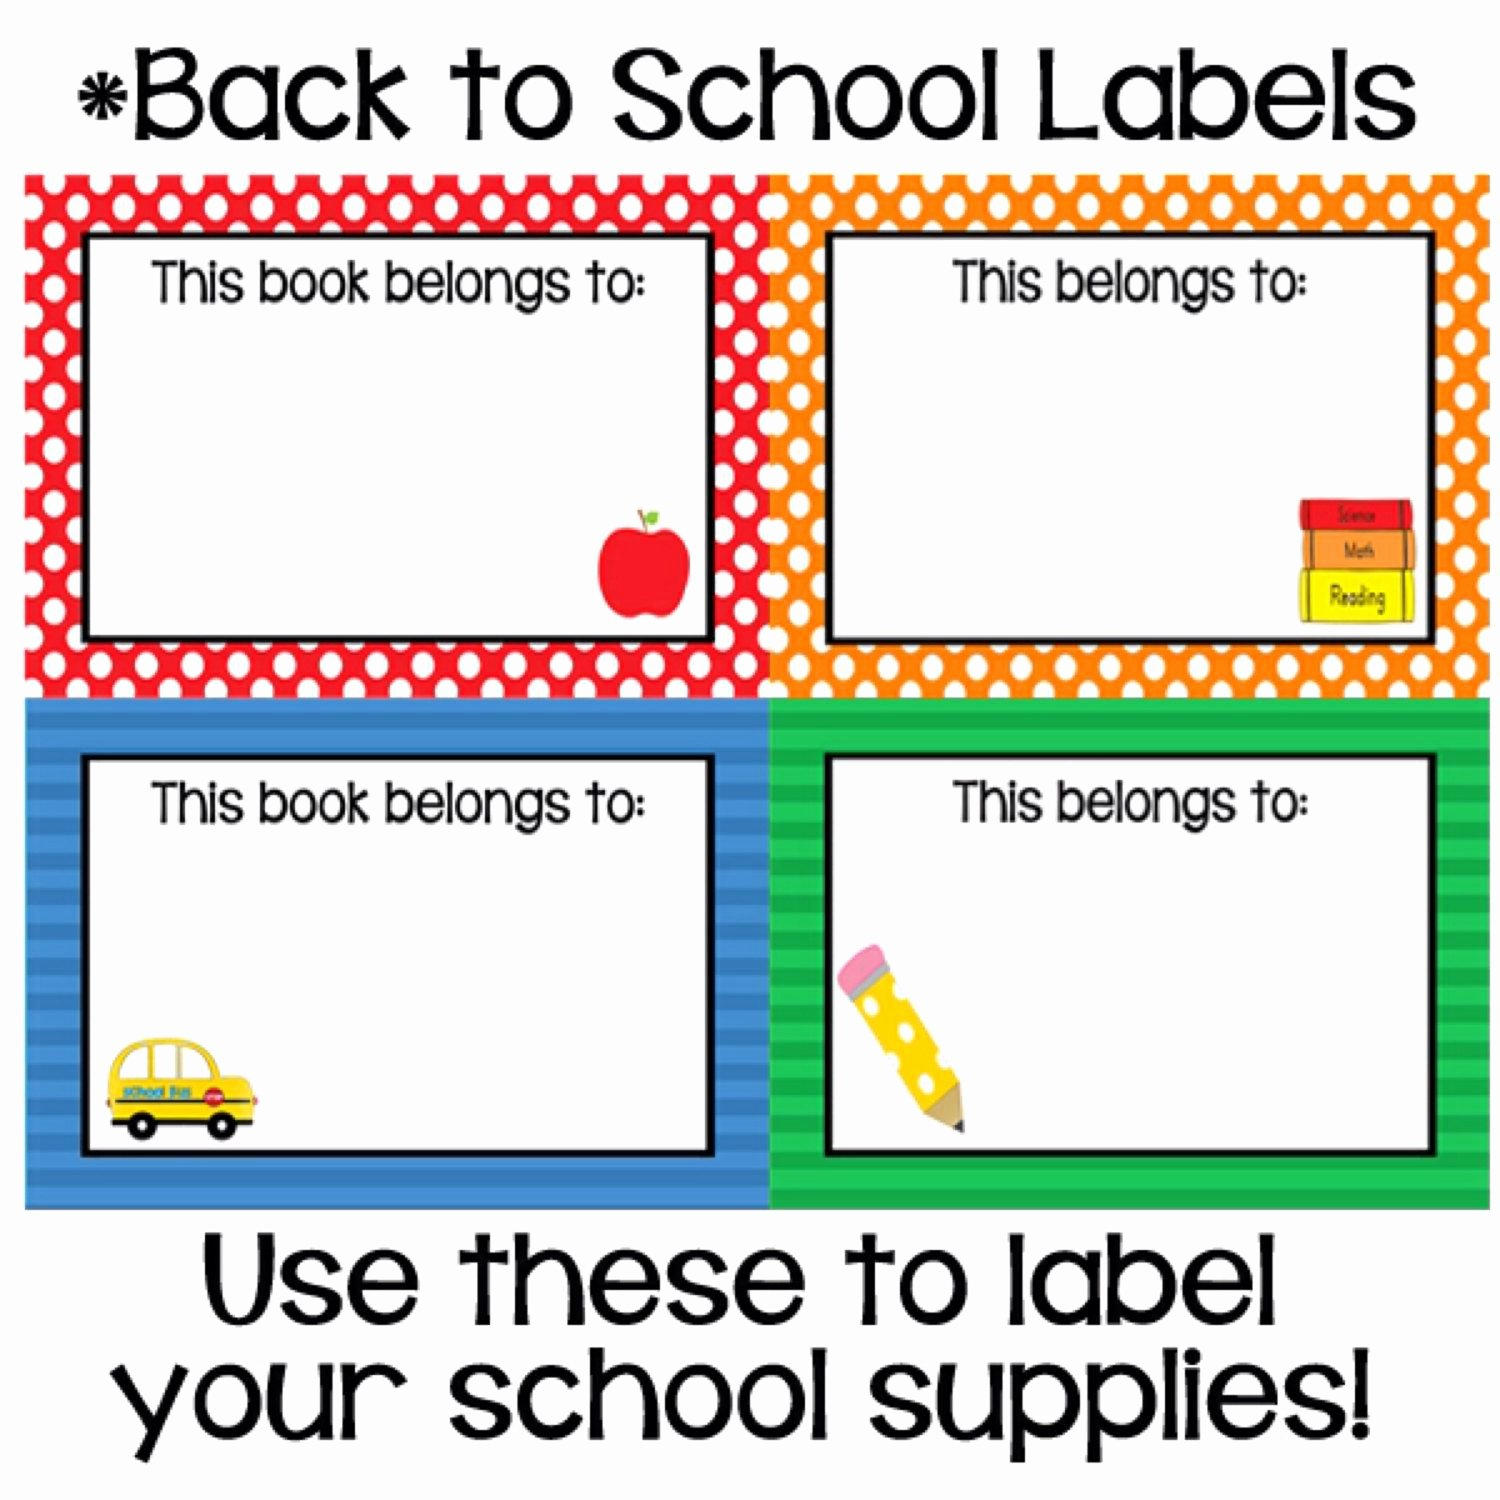 This Book Belongs to Template Awesome Printable Classroom Back to School Labels